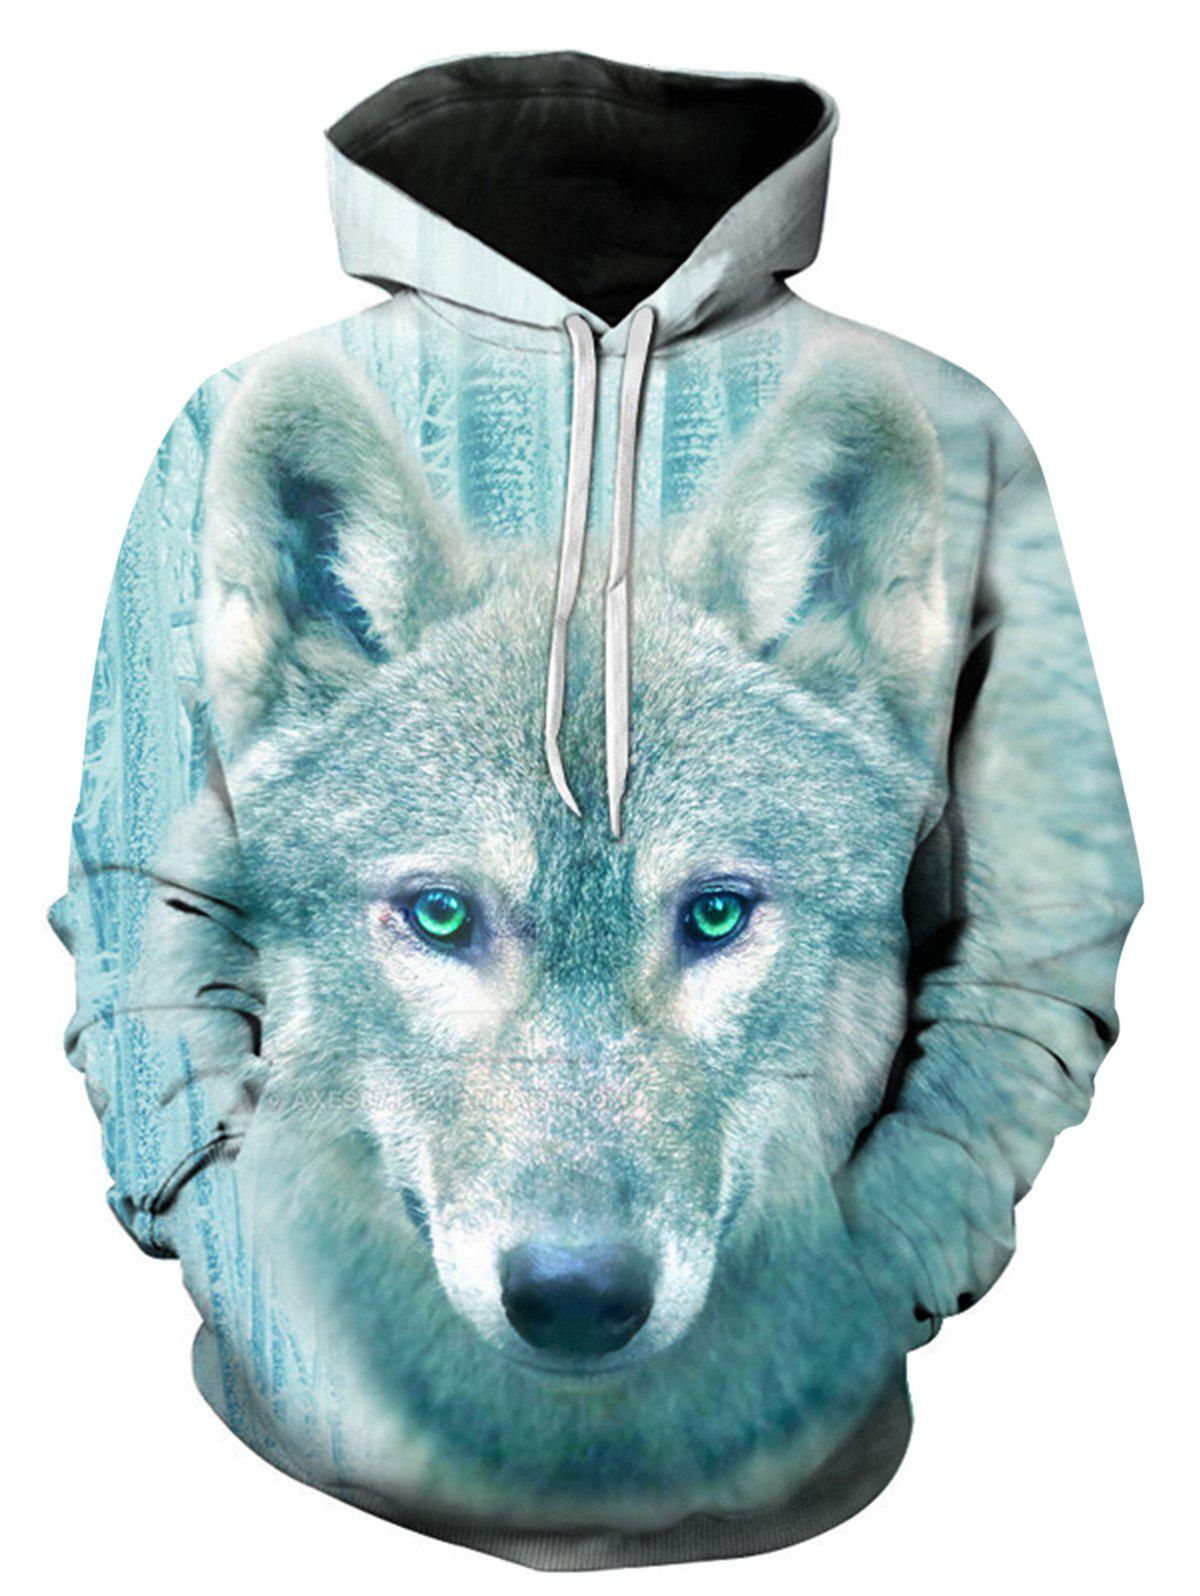 Wolf 3D Print Pullover HoodieMEN<br><br>Size: L; Color: COLORMIX; Material: Cotton,Polyester; Clothes Type: Hoodie; Shirt Length: Regular; Sleeve Length: Full; Style: Fashion; Patterns: 3D,Animal; Thickness: Regular; Occasion: Casual ,Daily Use,Going Out; Weight: 0.4800kg; Package Contents: 1 x Hoodie;